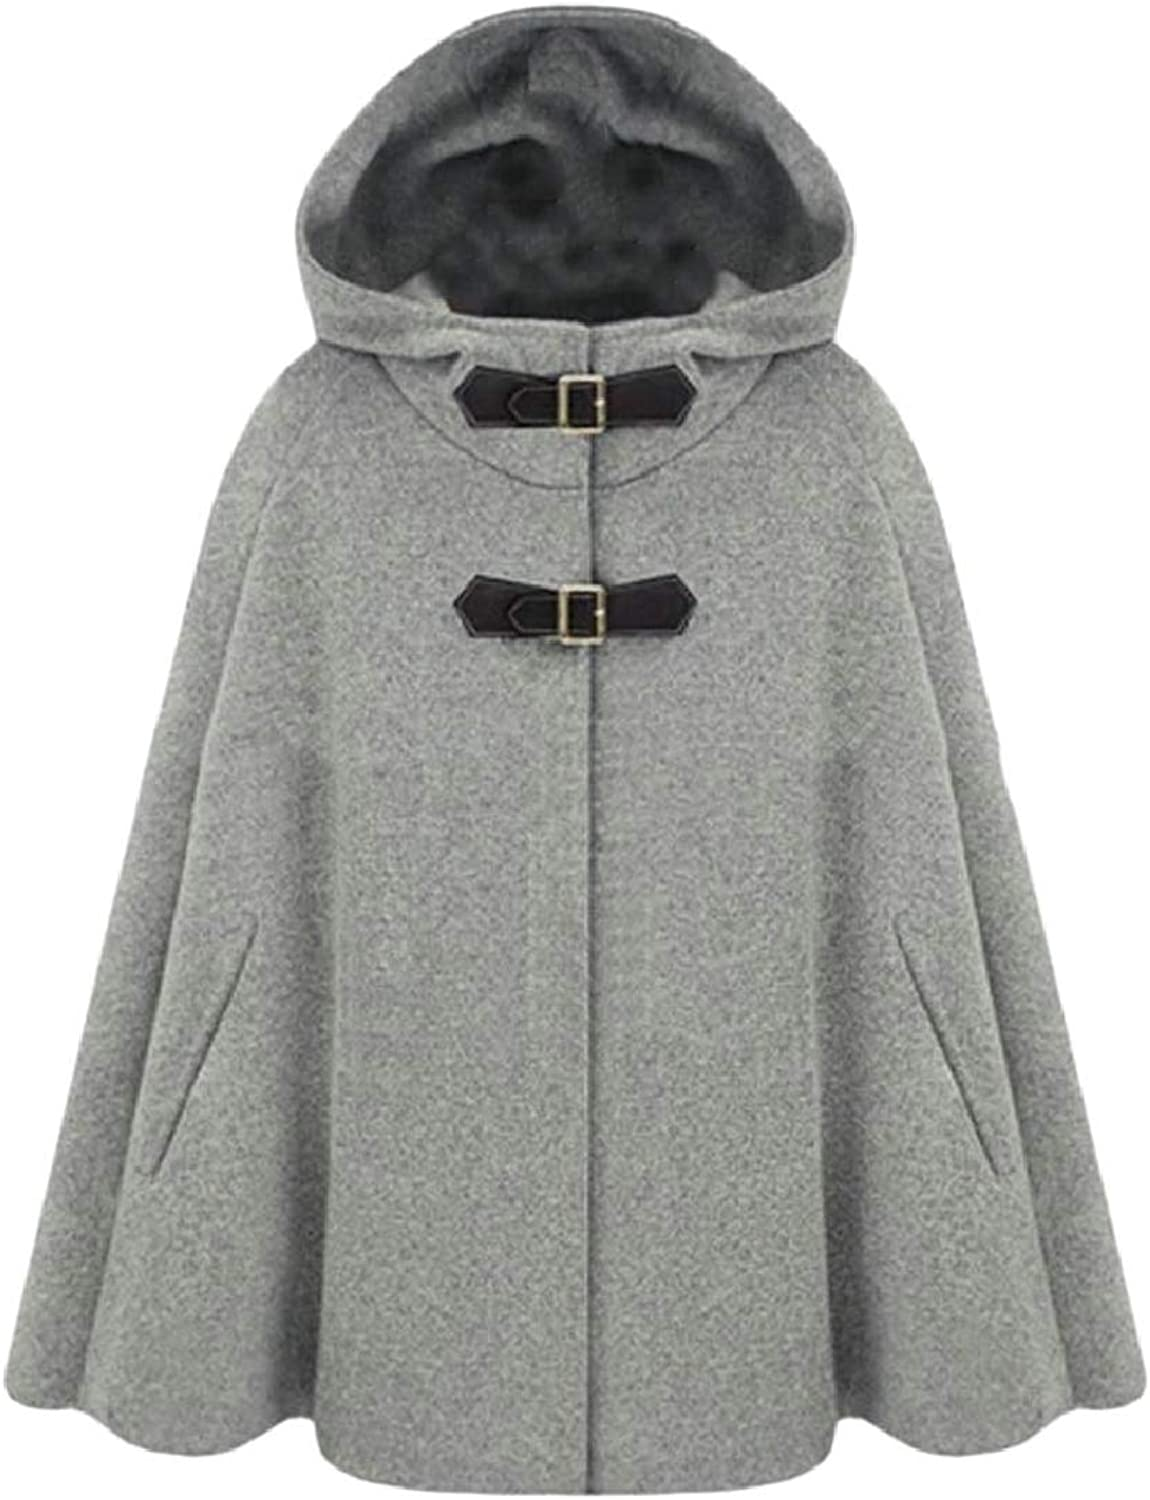 Xswsy XGCA Women's Cloak Winter Woolen Blend Poncho Pea Coat Outwear Hood